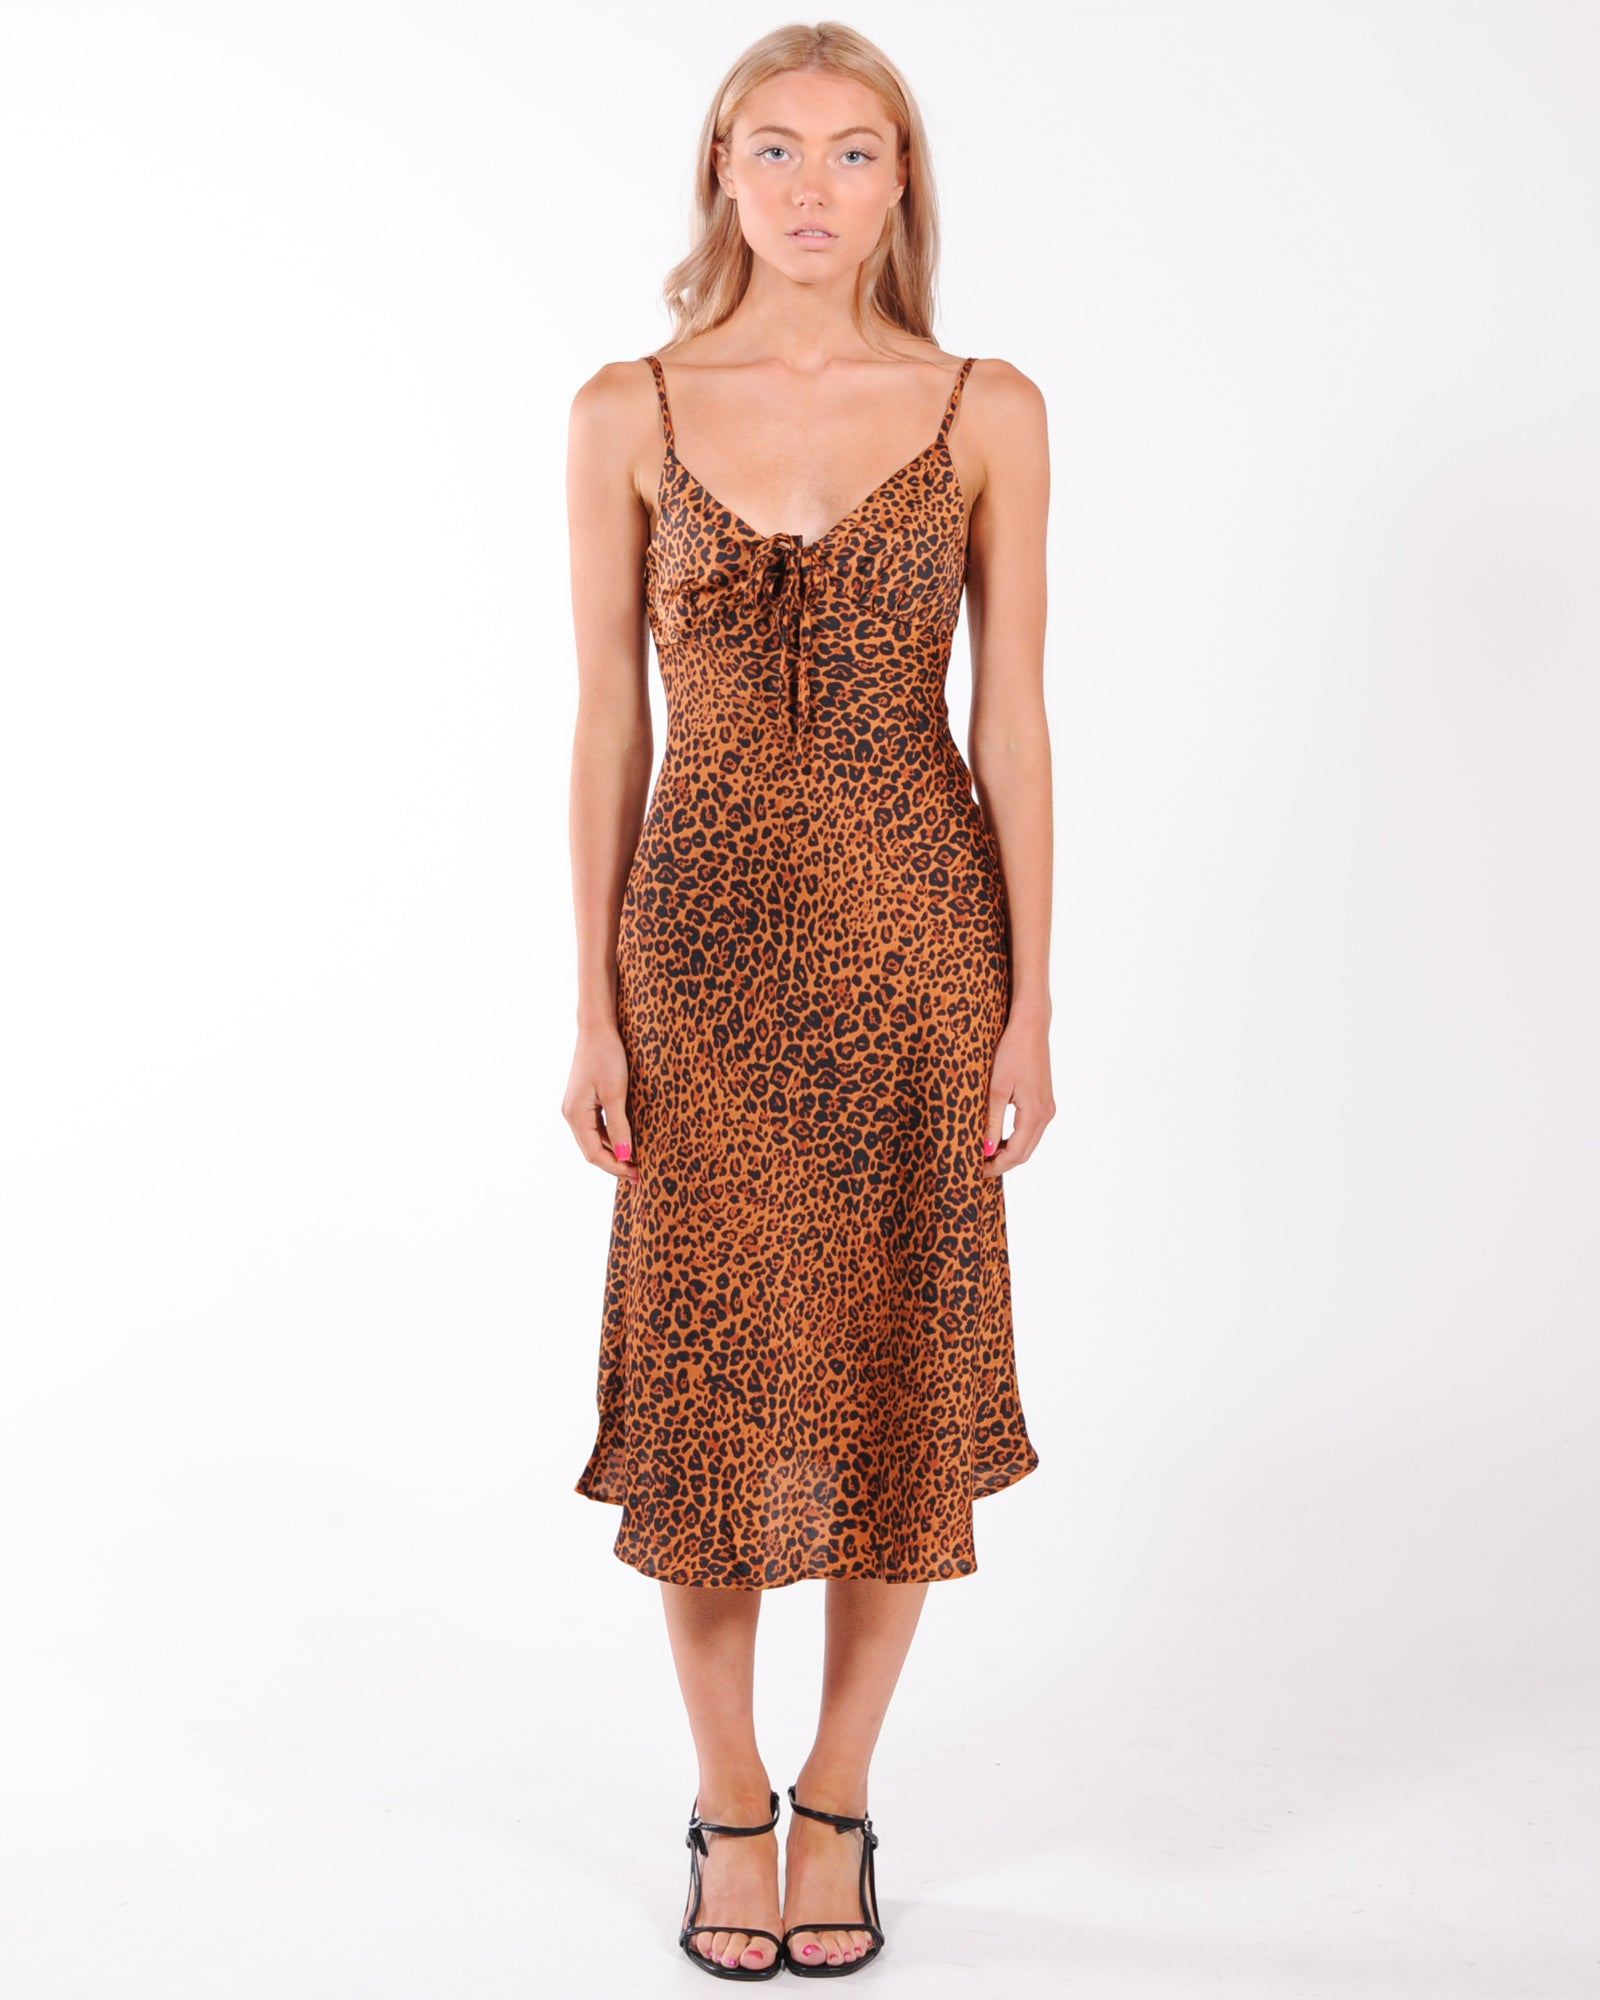 Wild Ways Midi Dress - Leopard